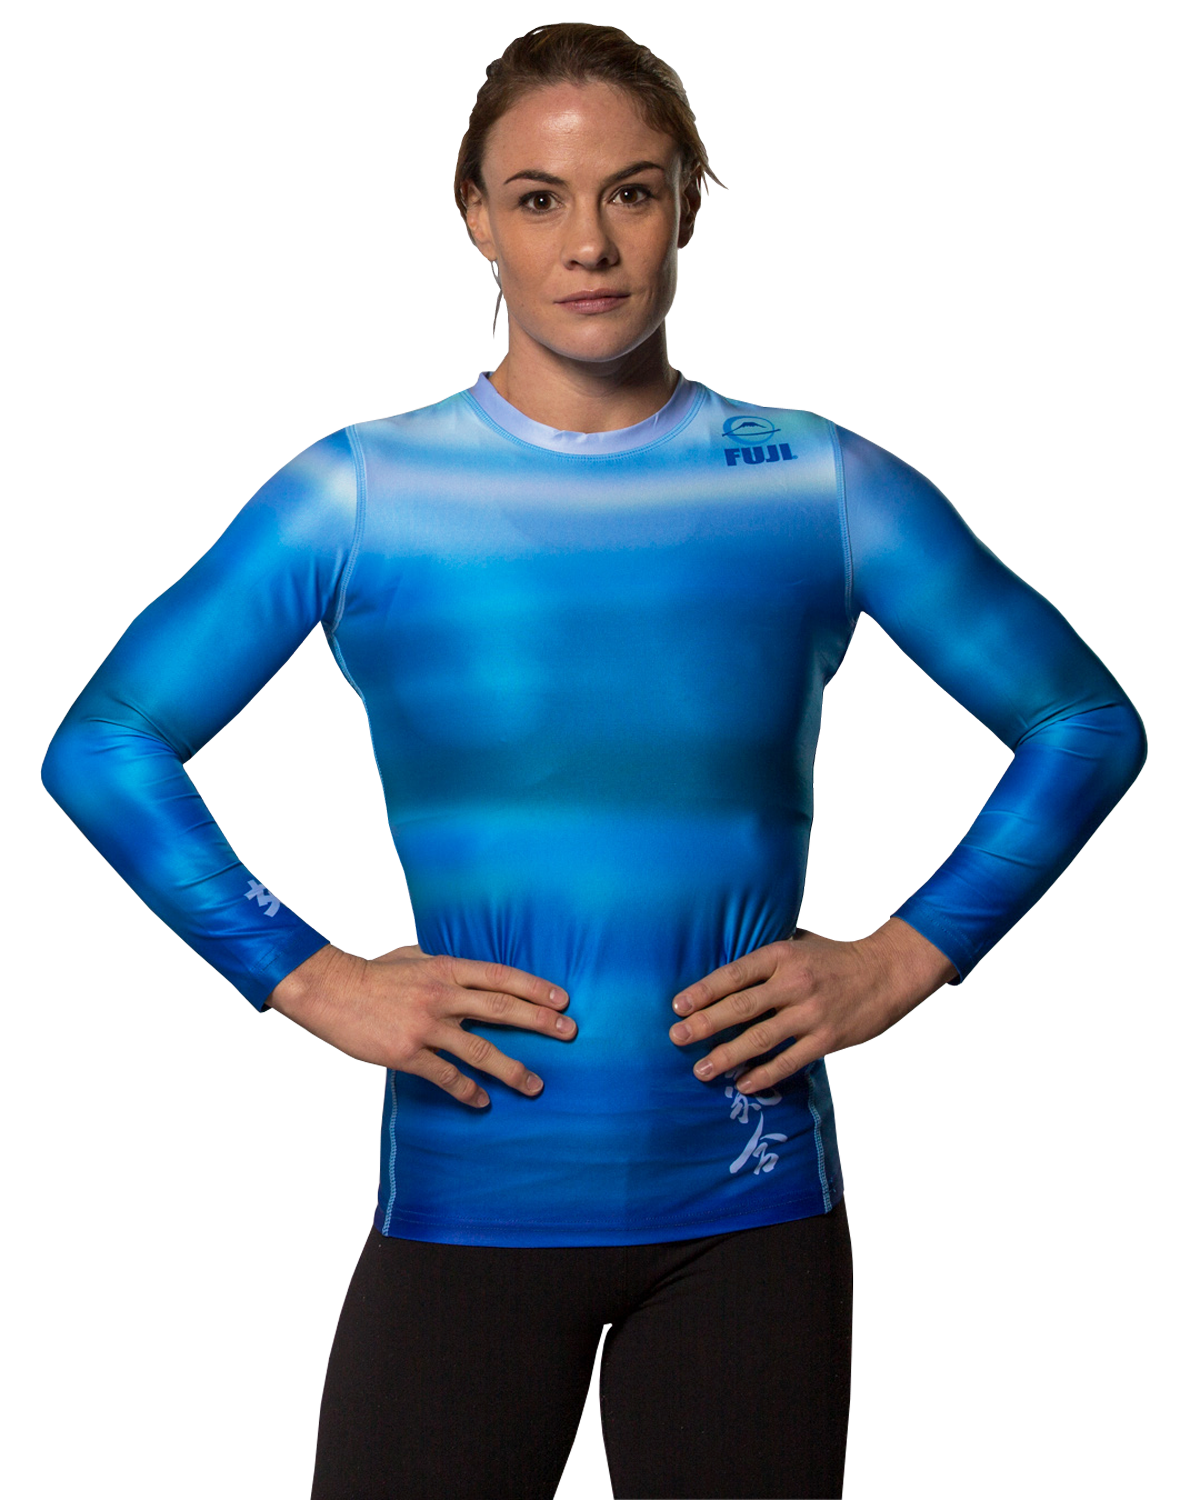 Fuji Haiku Rashguard Review